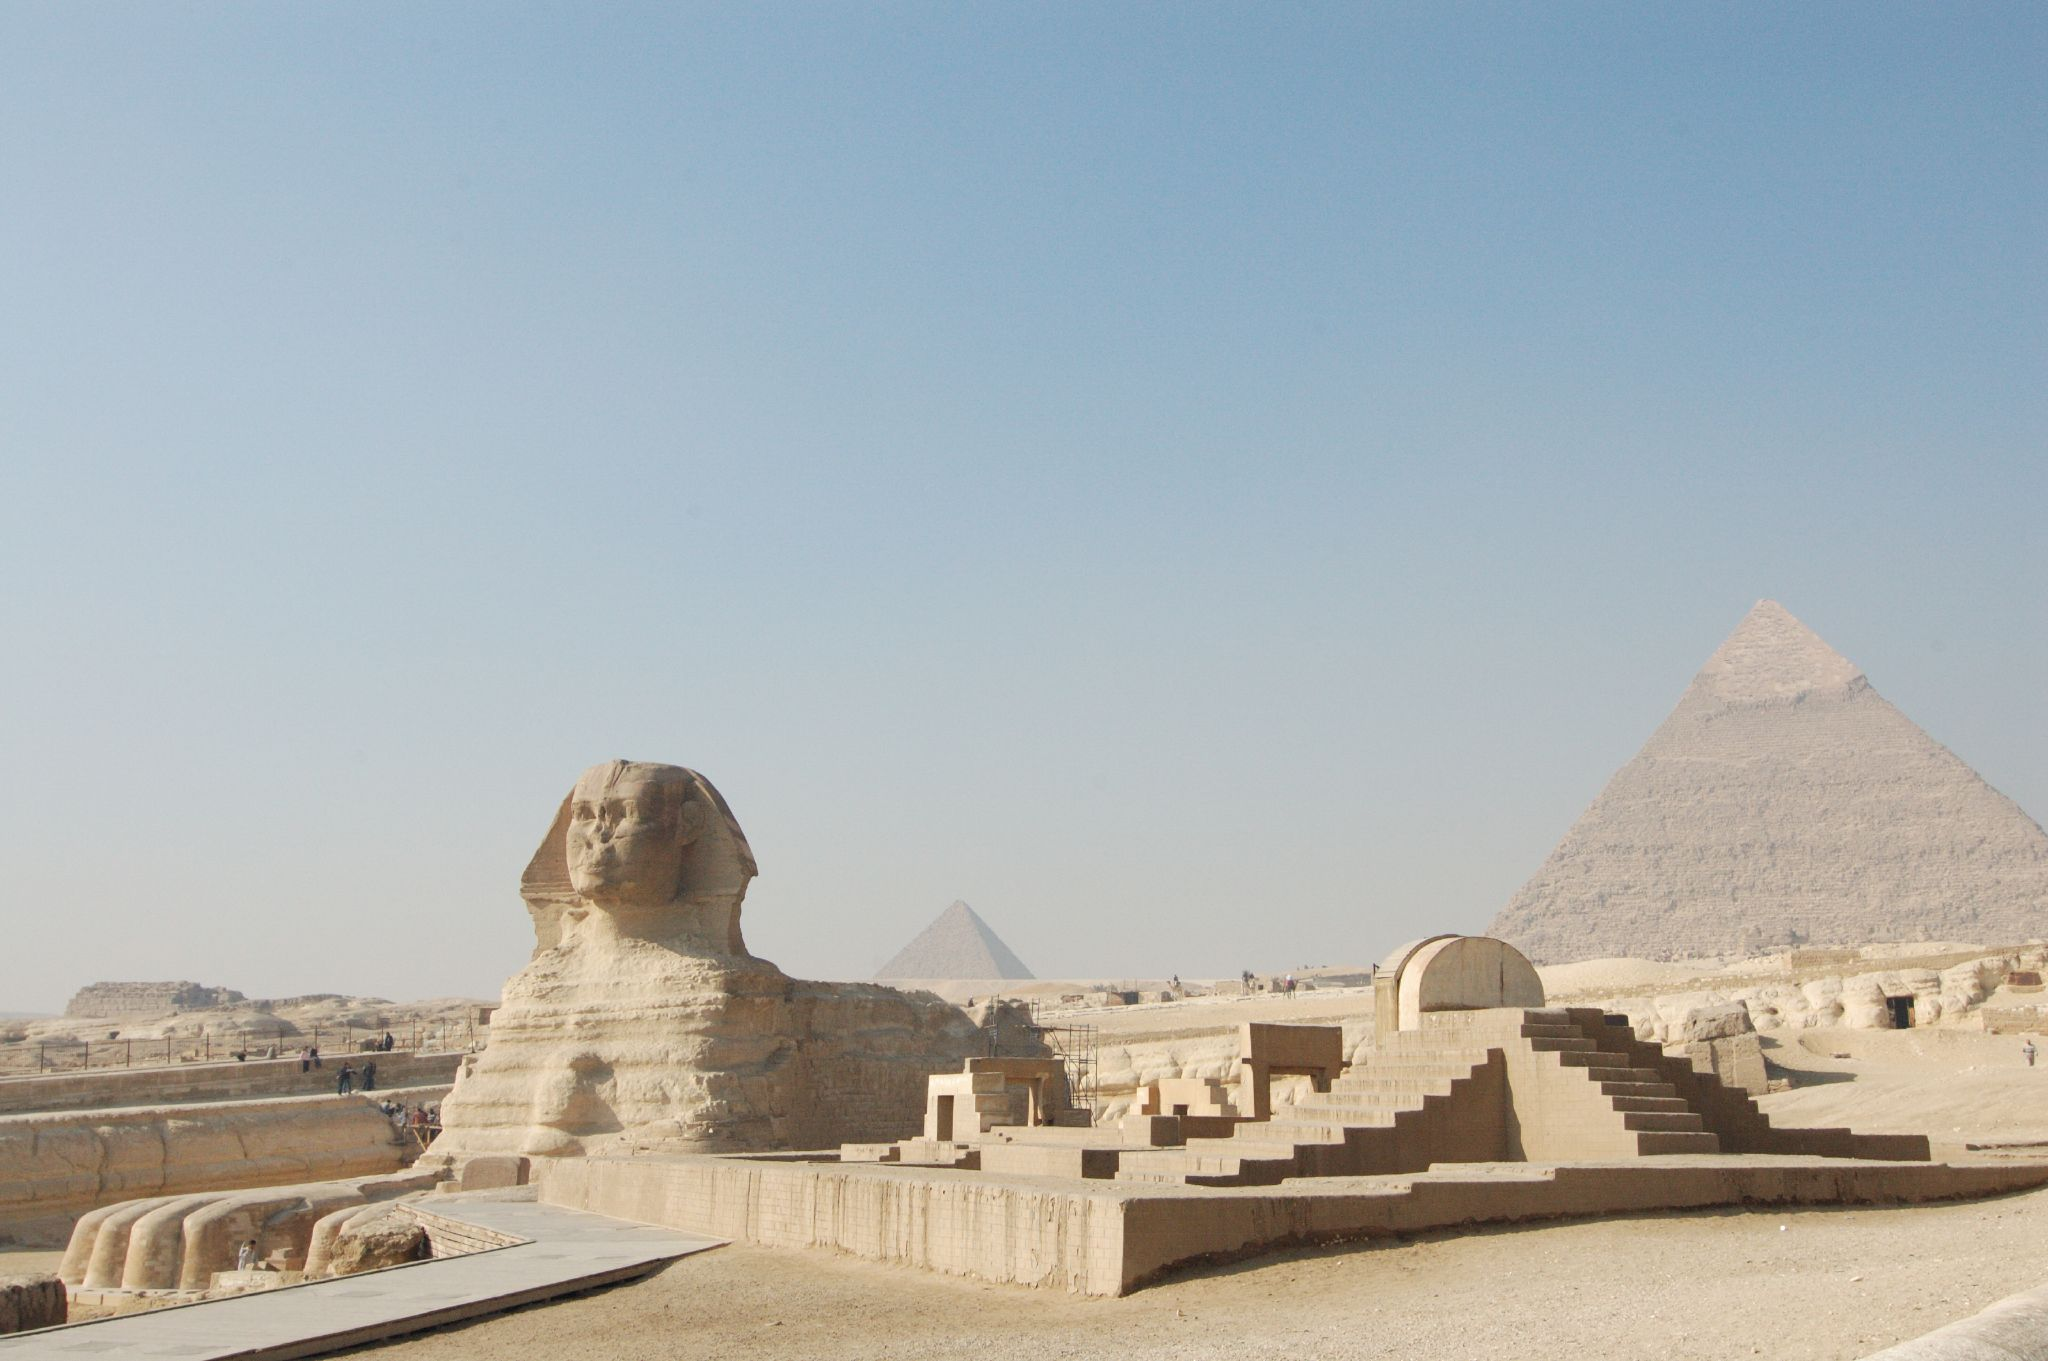 http://upload.wikimedia.org/wikipedia/commons/d/d6/Giza_sfinge_e_piramidi.jpg